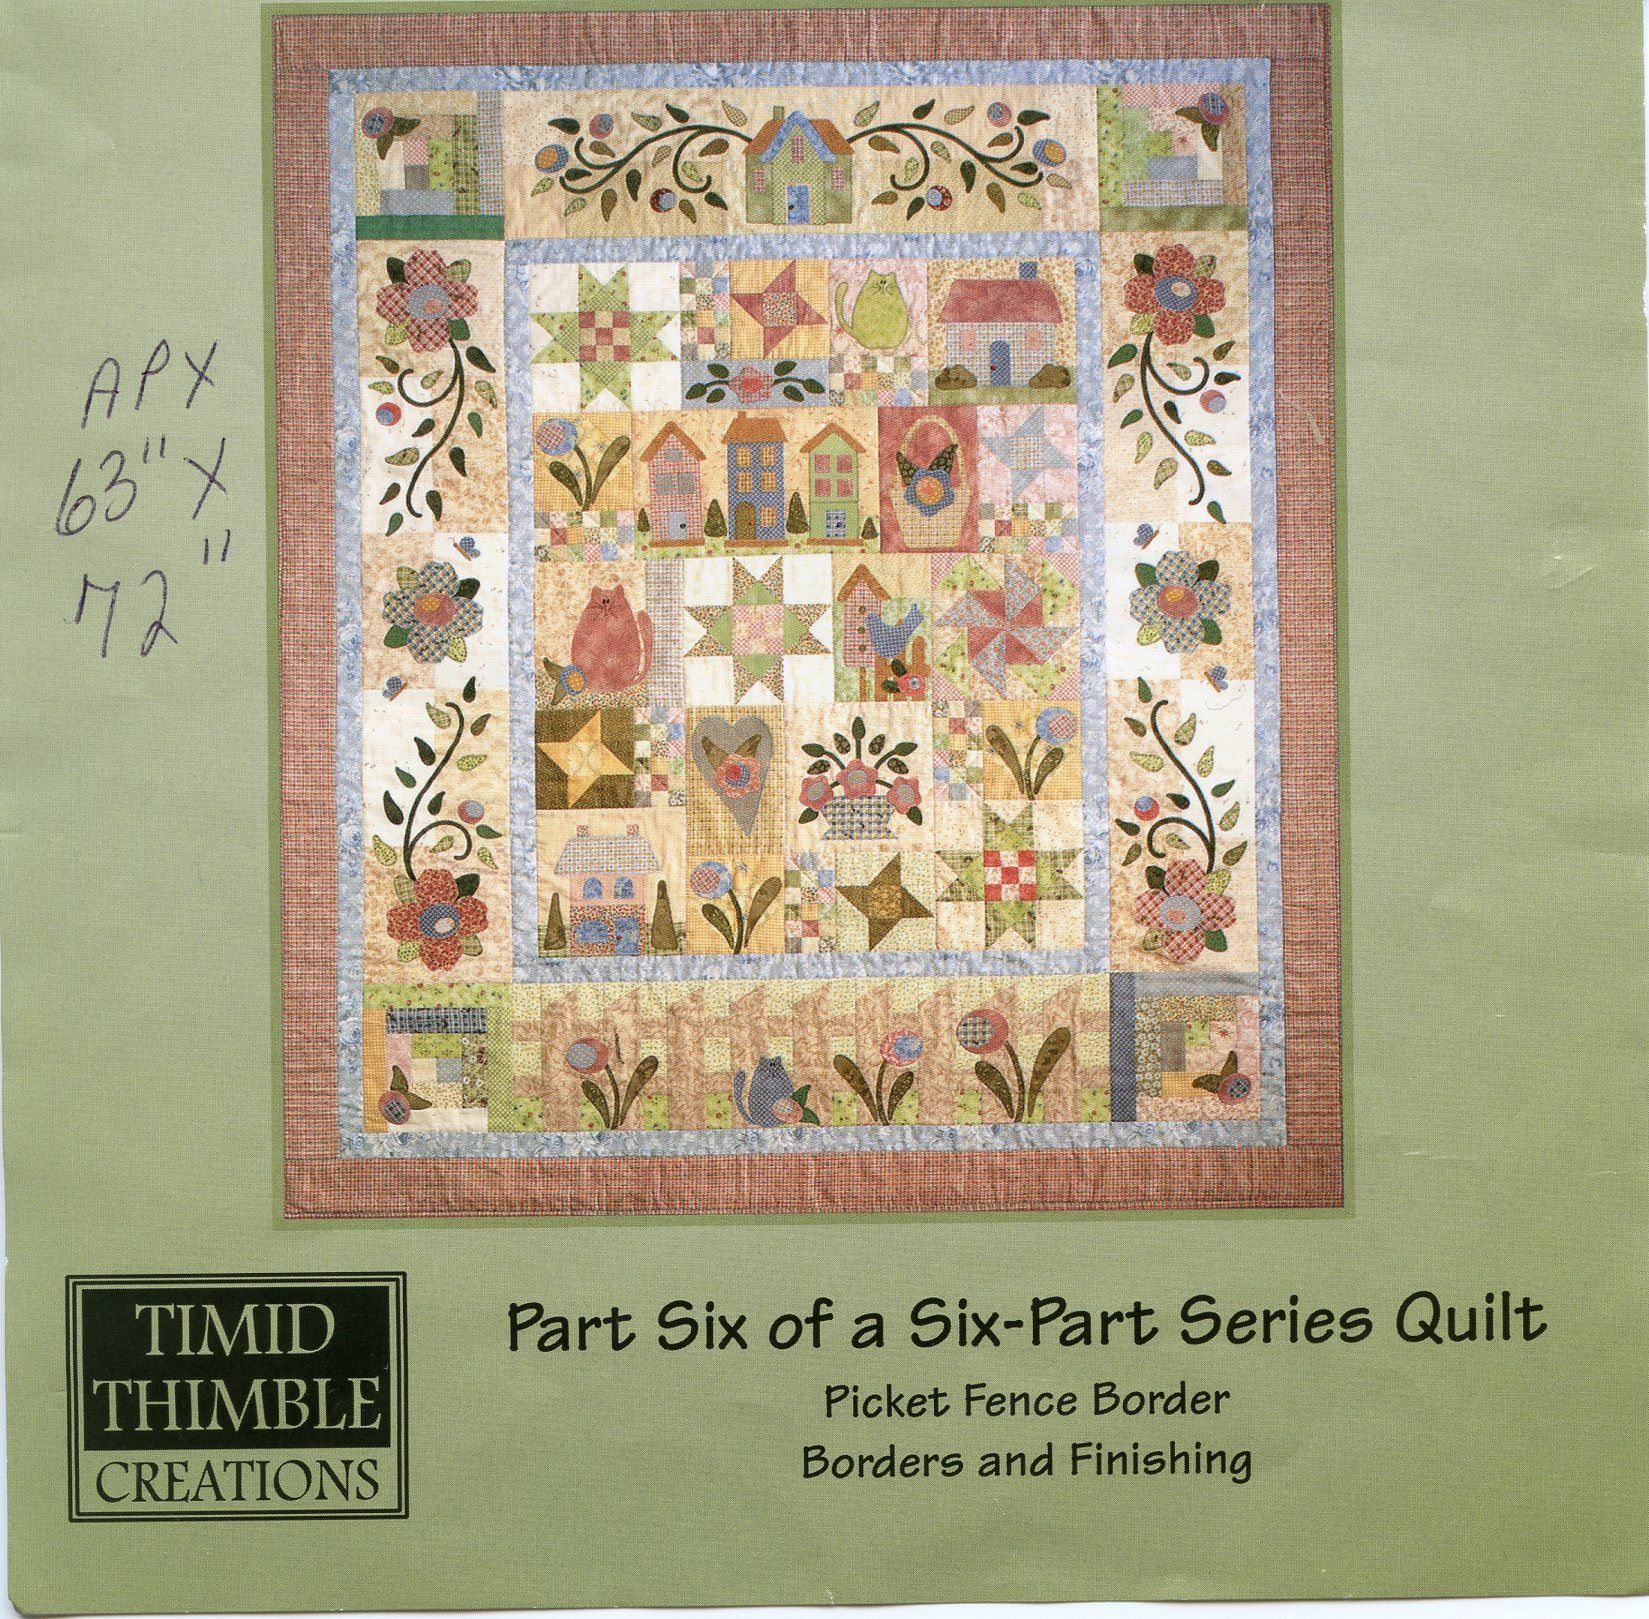 Rosewood Cottage Applique Quilt pattern by Nancy Odom | Quilting ... : cottage quilt designs - Adamdwight.com